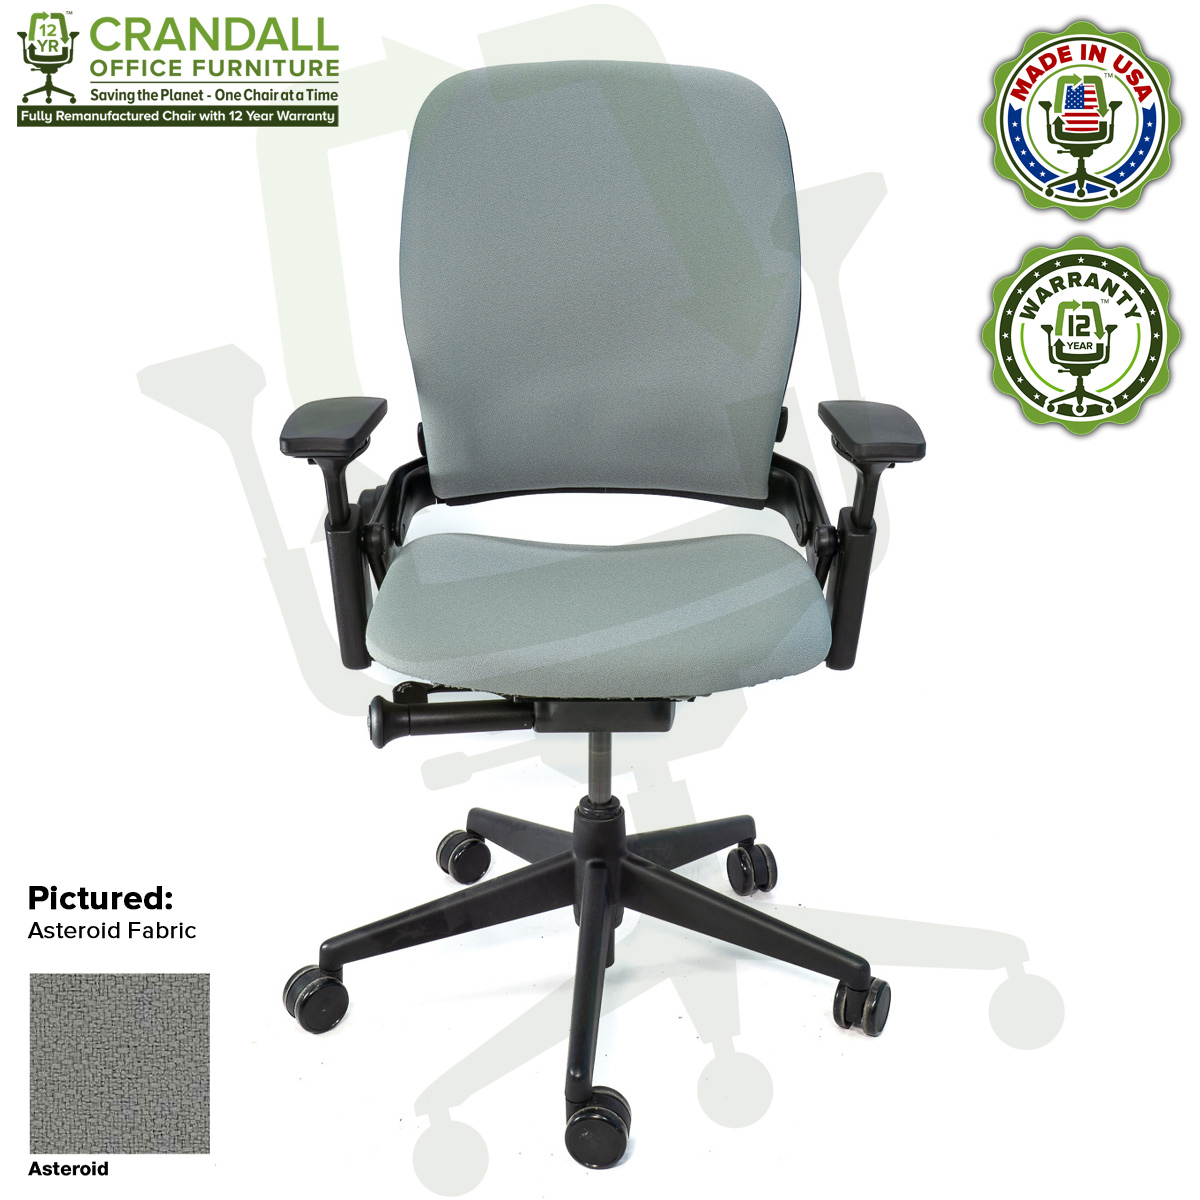 Crandall-Office-Remanufactured-Steelcase-462-V2-Leap-Chair-Color-Asteroid